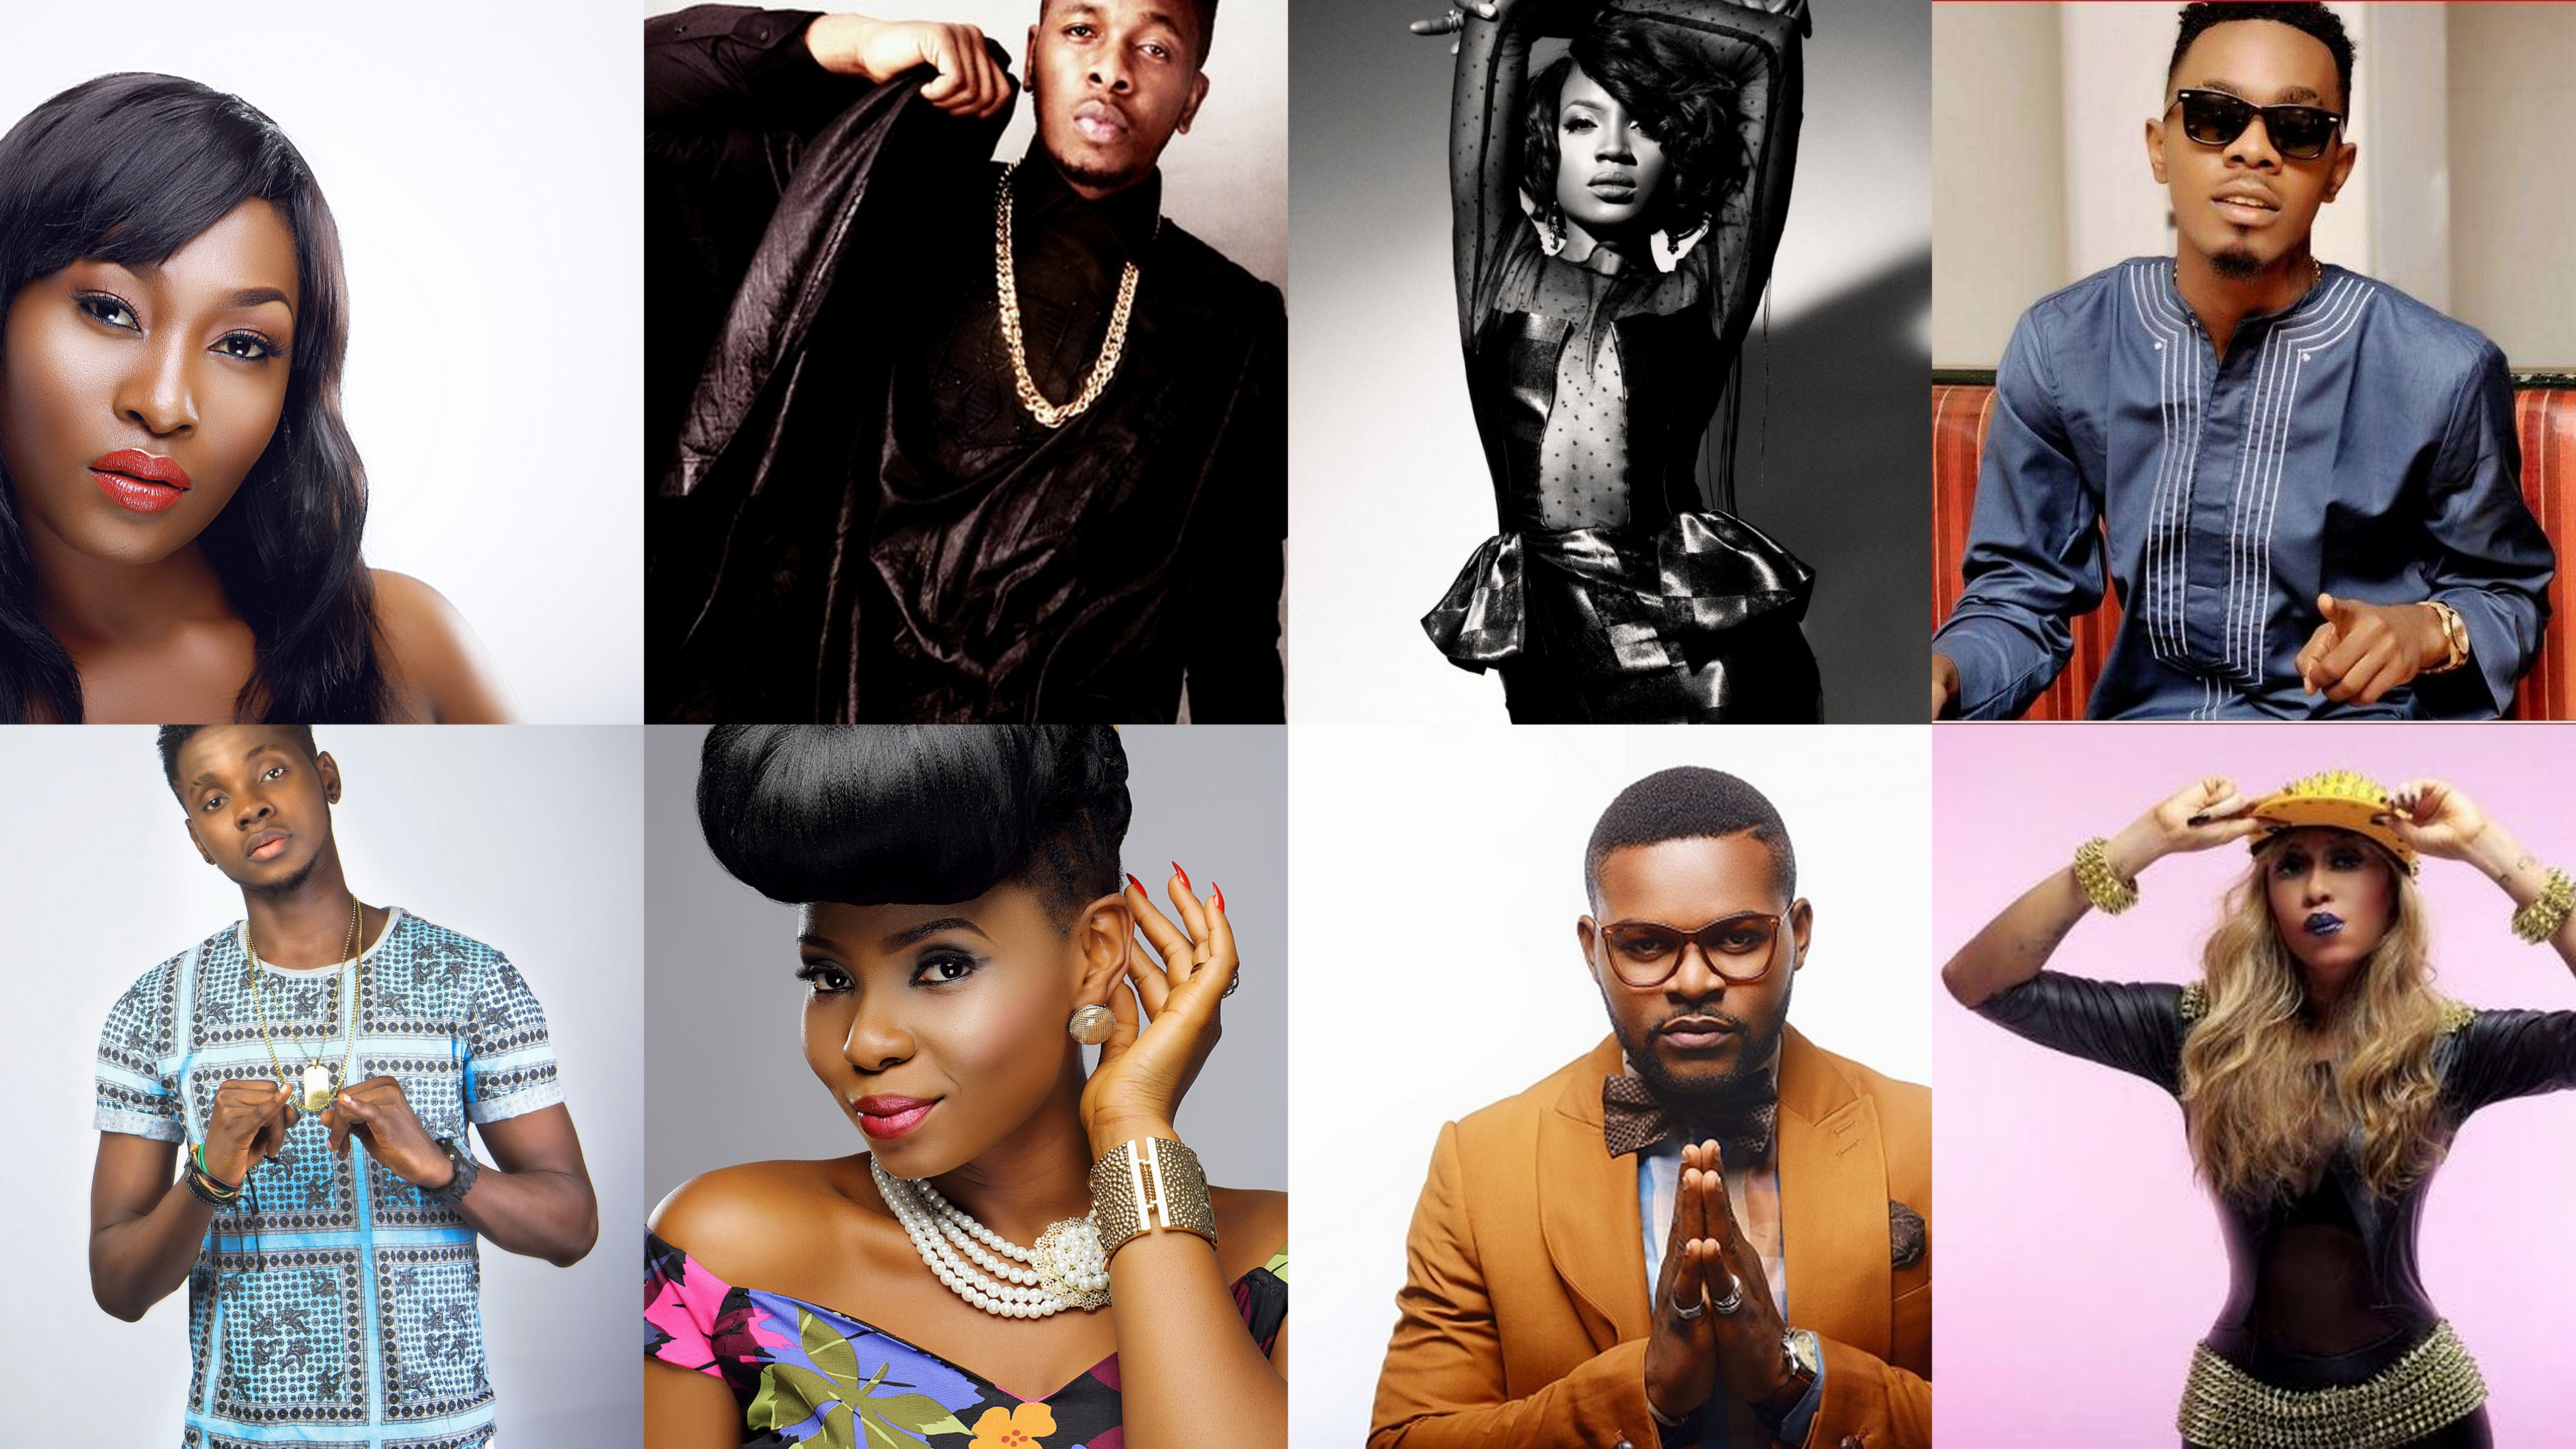 Nigerian artistes to watch in 2015